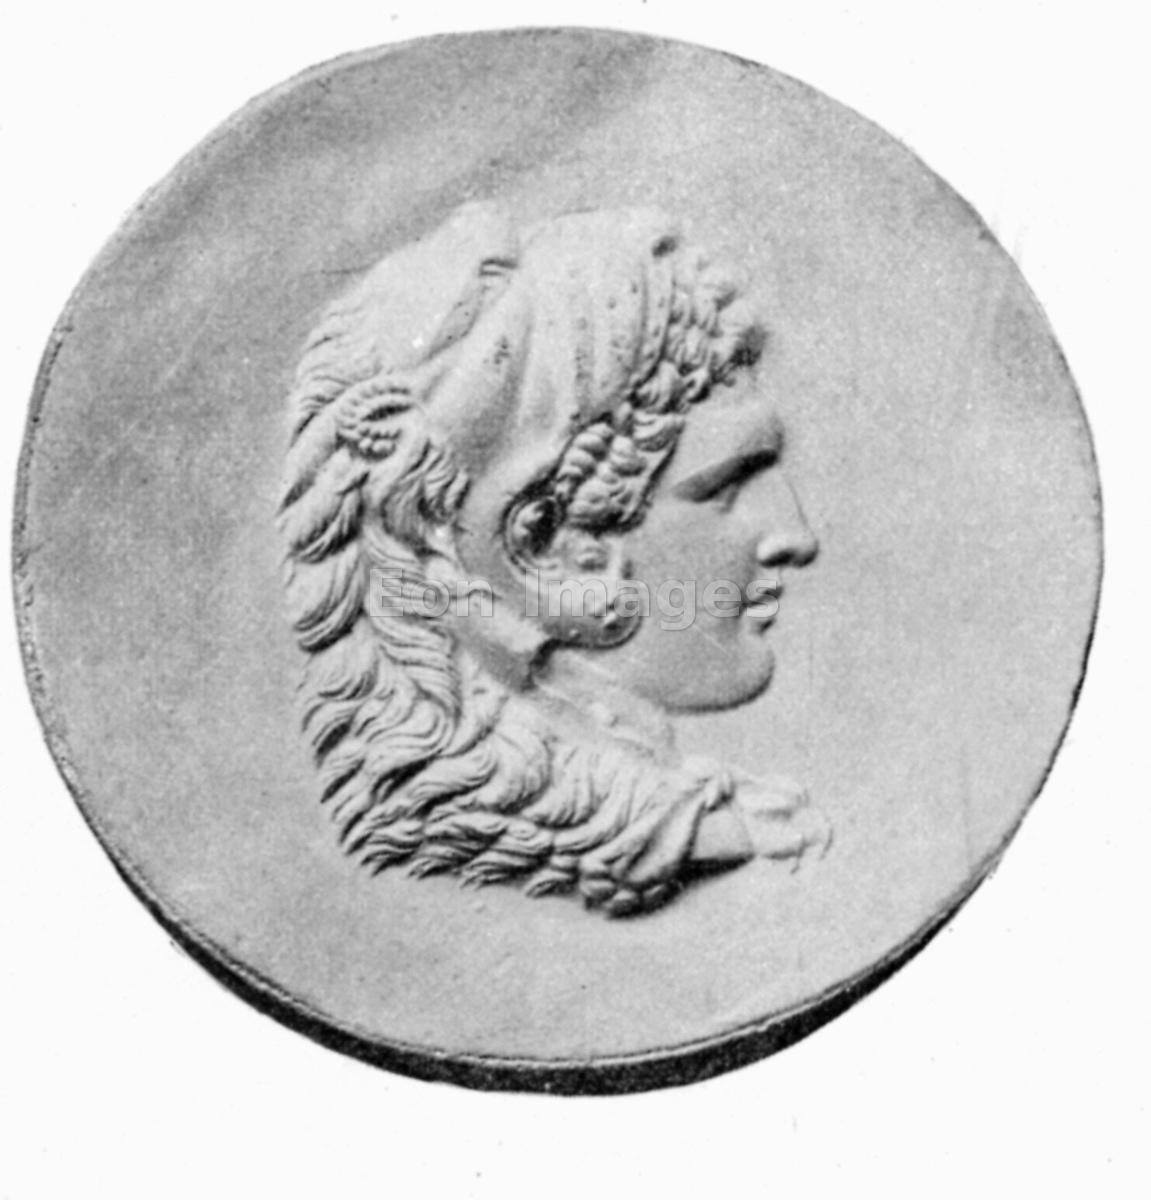 Coin depicting Alexander the Great